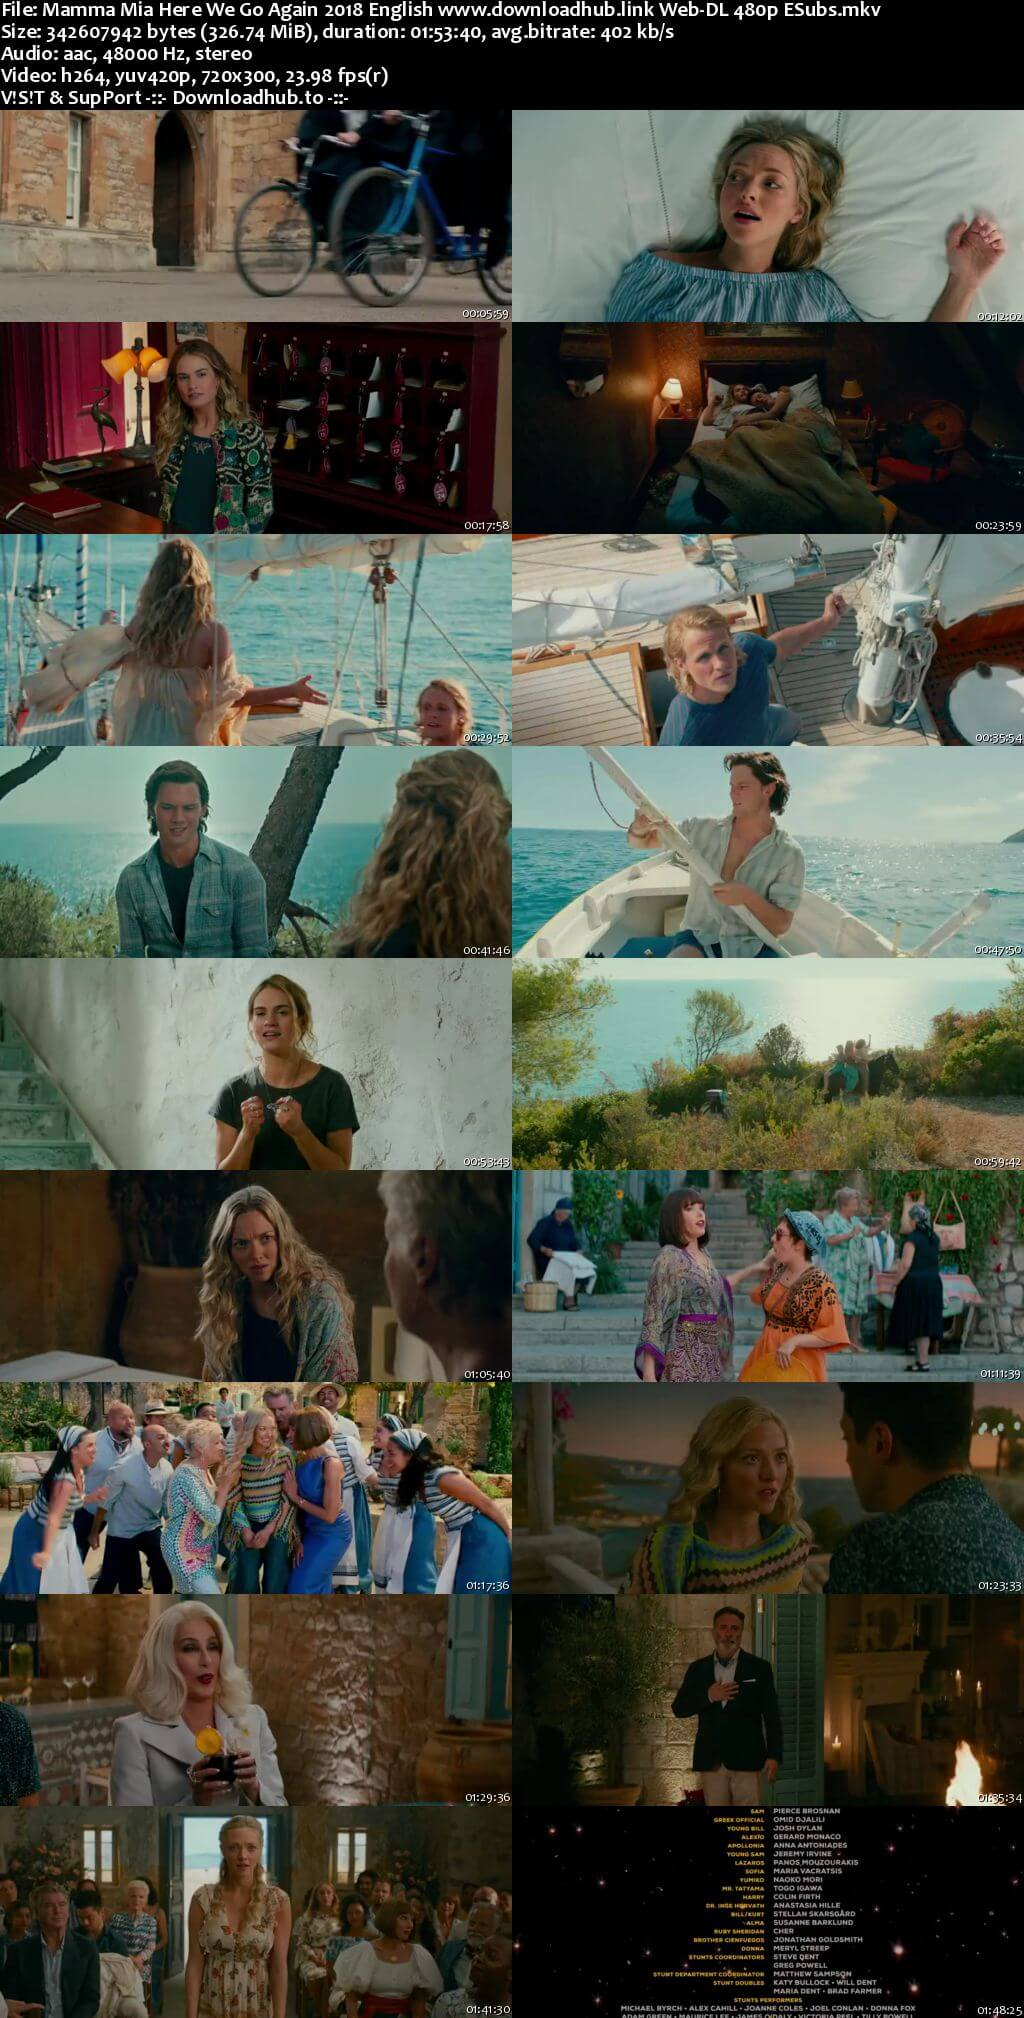 Mamma Mia Here We Go Again 2018 English 300MB Web-DL 480p ESubs